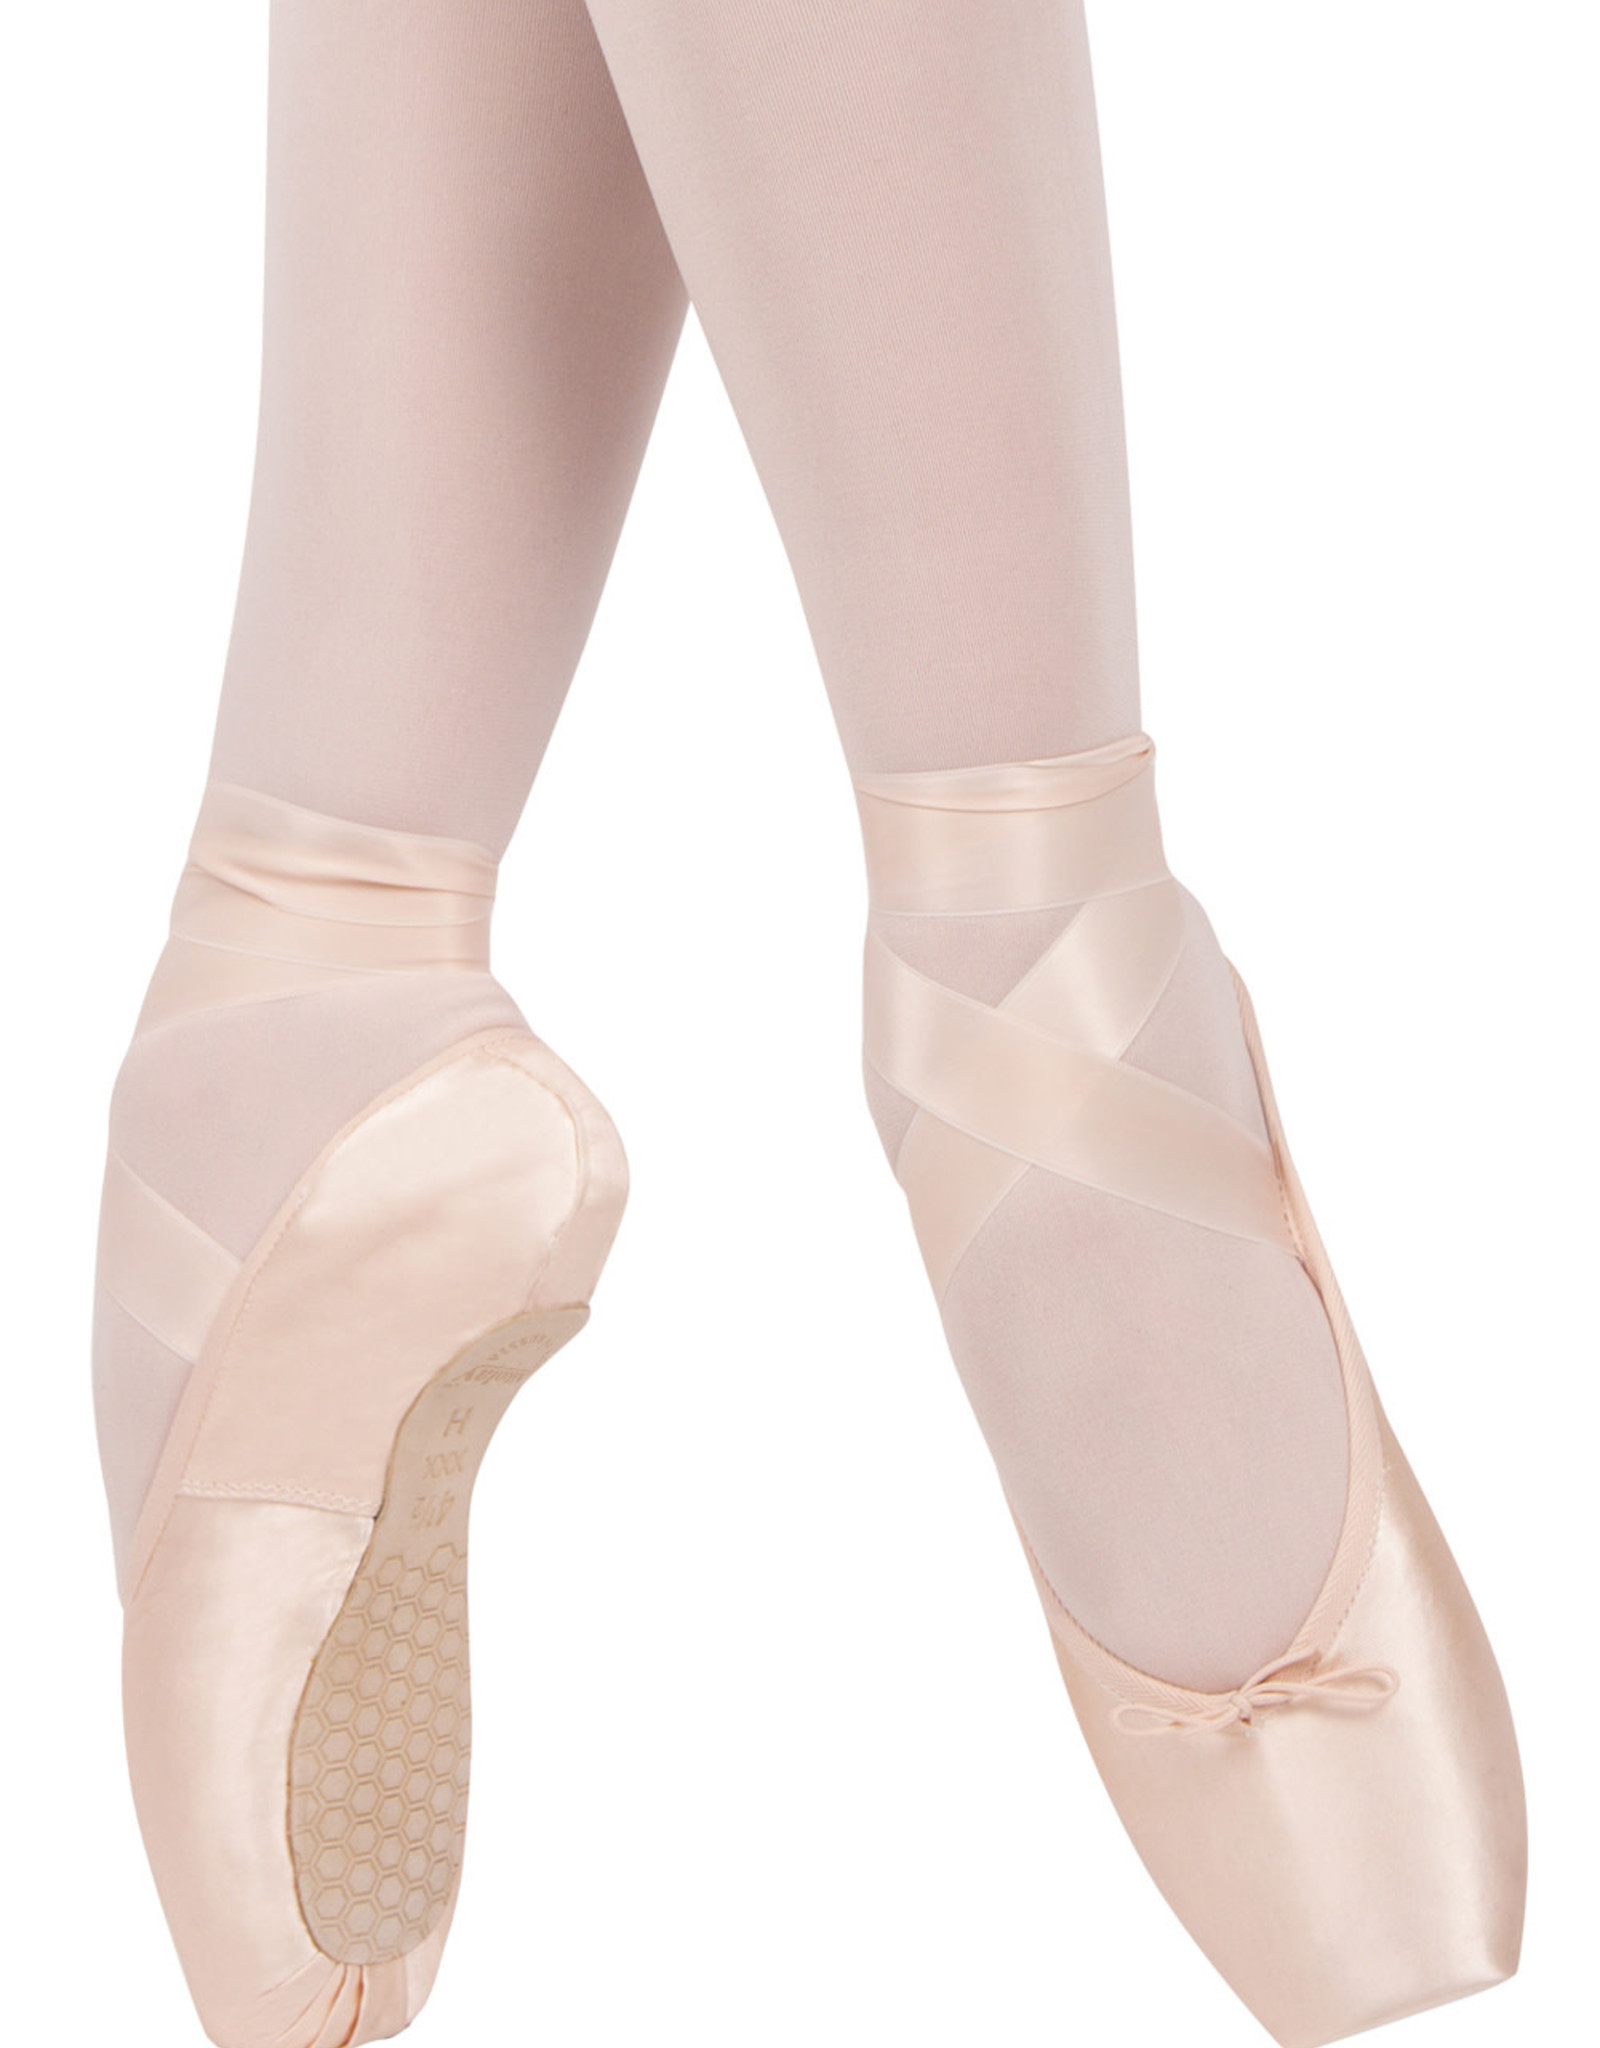 Nikolay Grishko SmartPointe Medium Shank